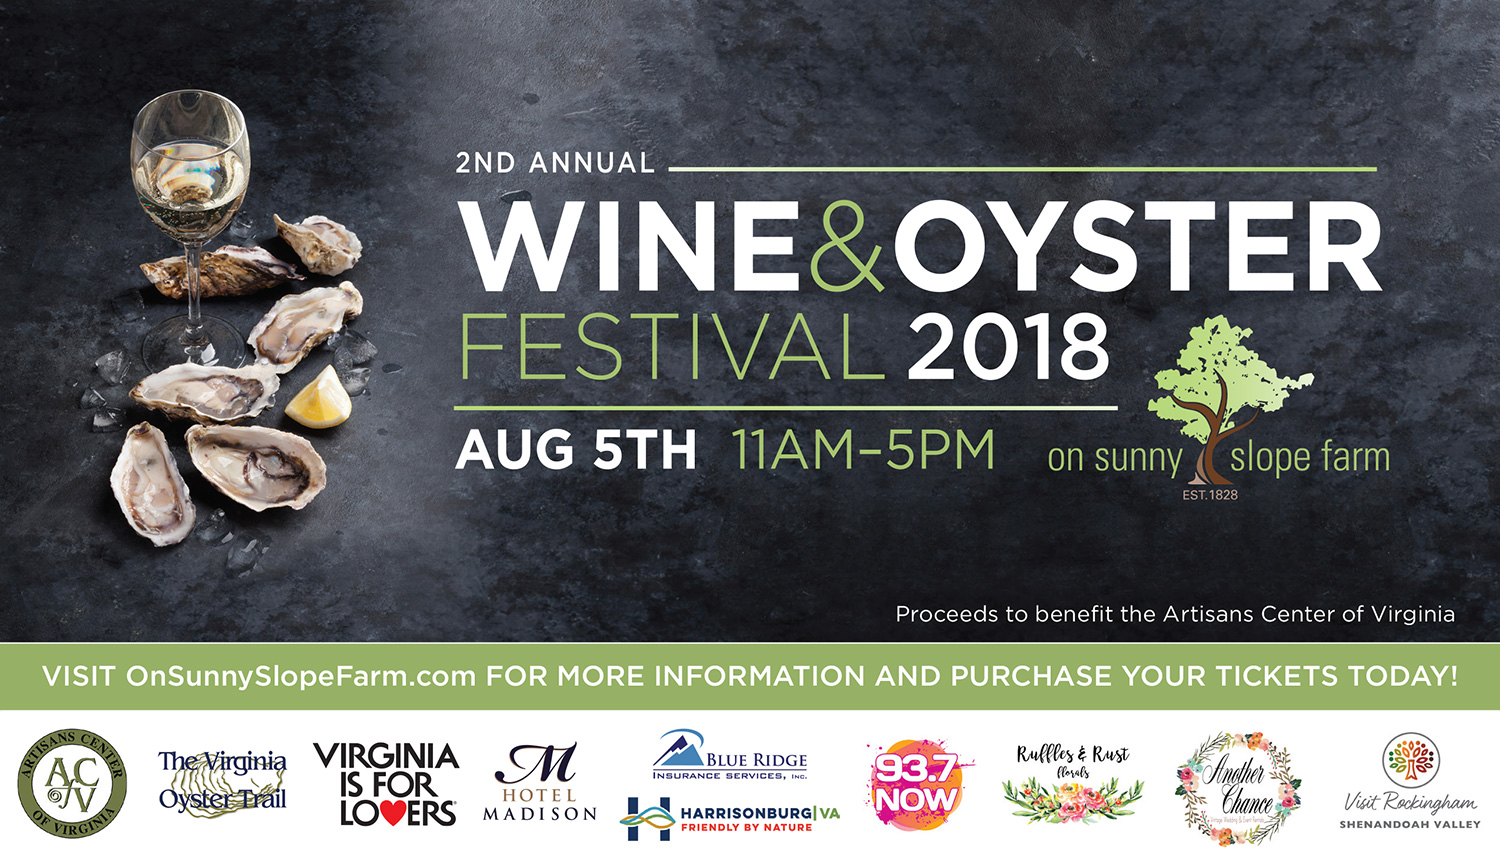 Wine_Oyster_Festival_2018_On_Sunny_Slope_Farm_Artisan_Center_Virginia